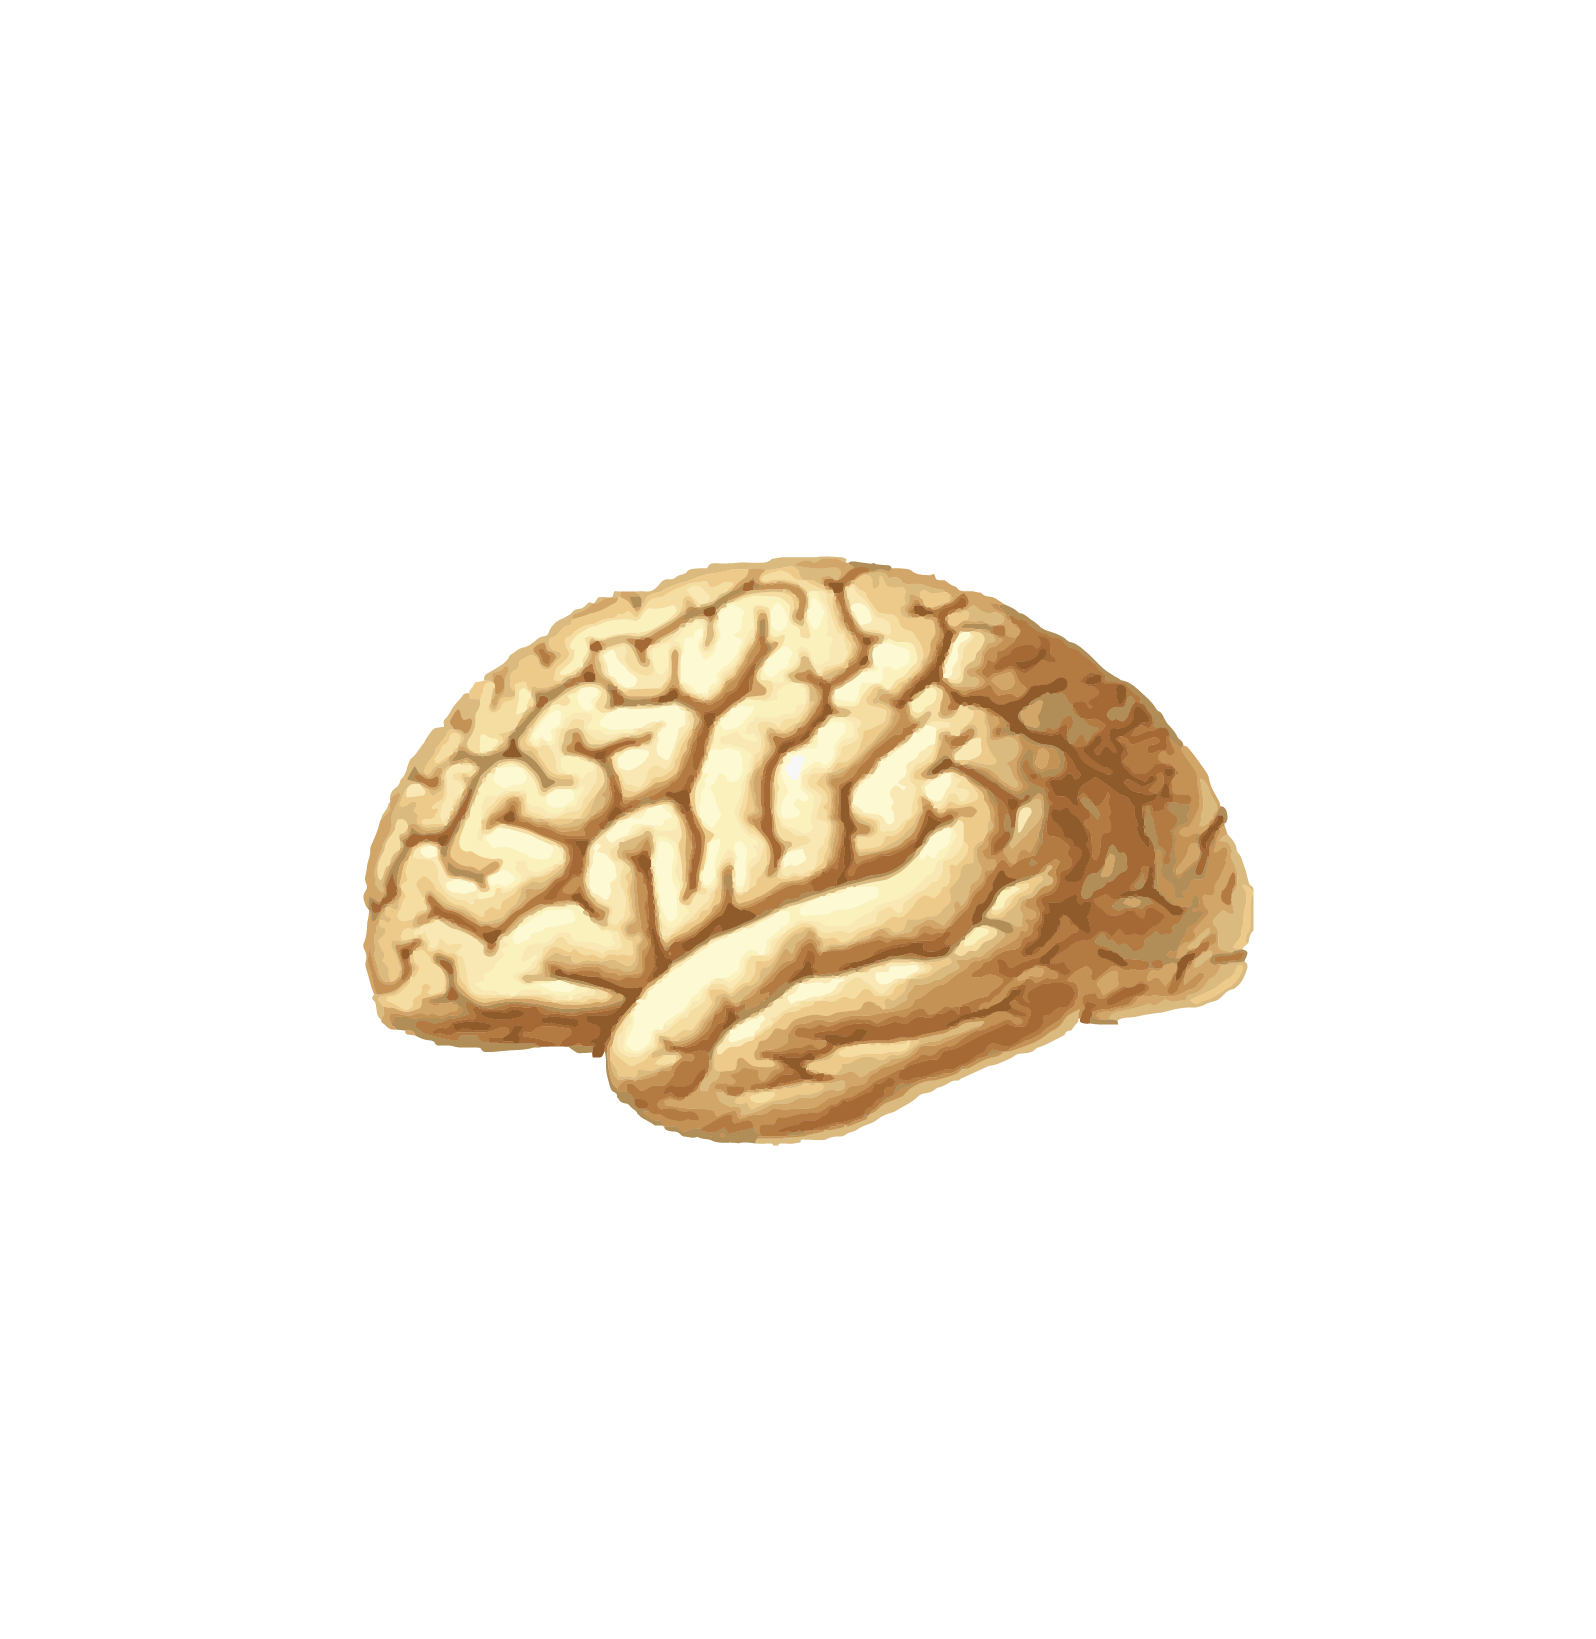 SEXNE